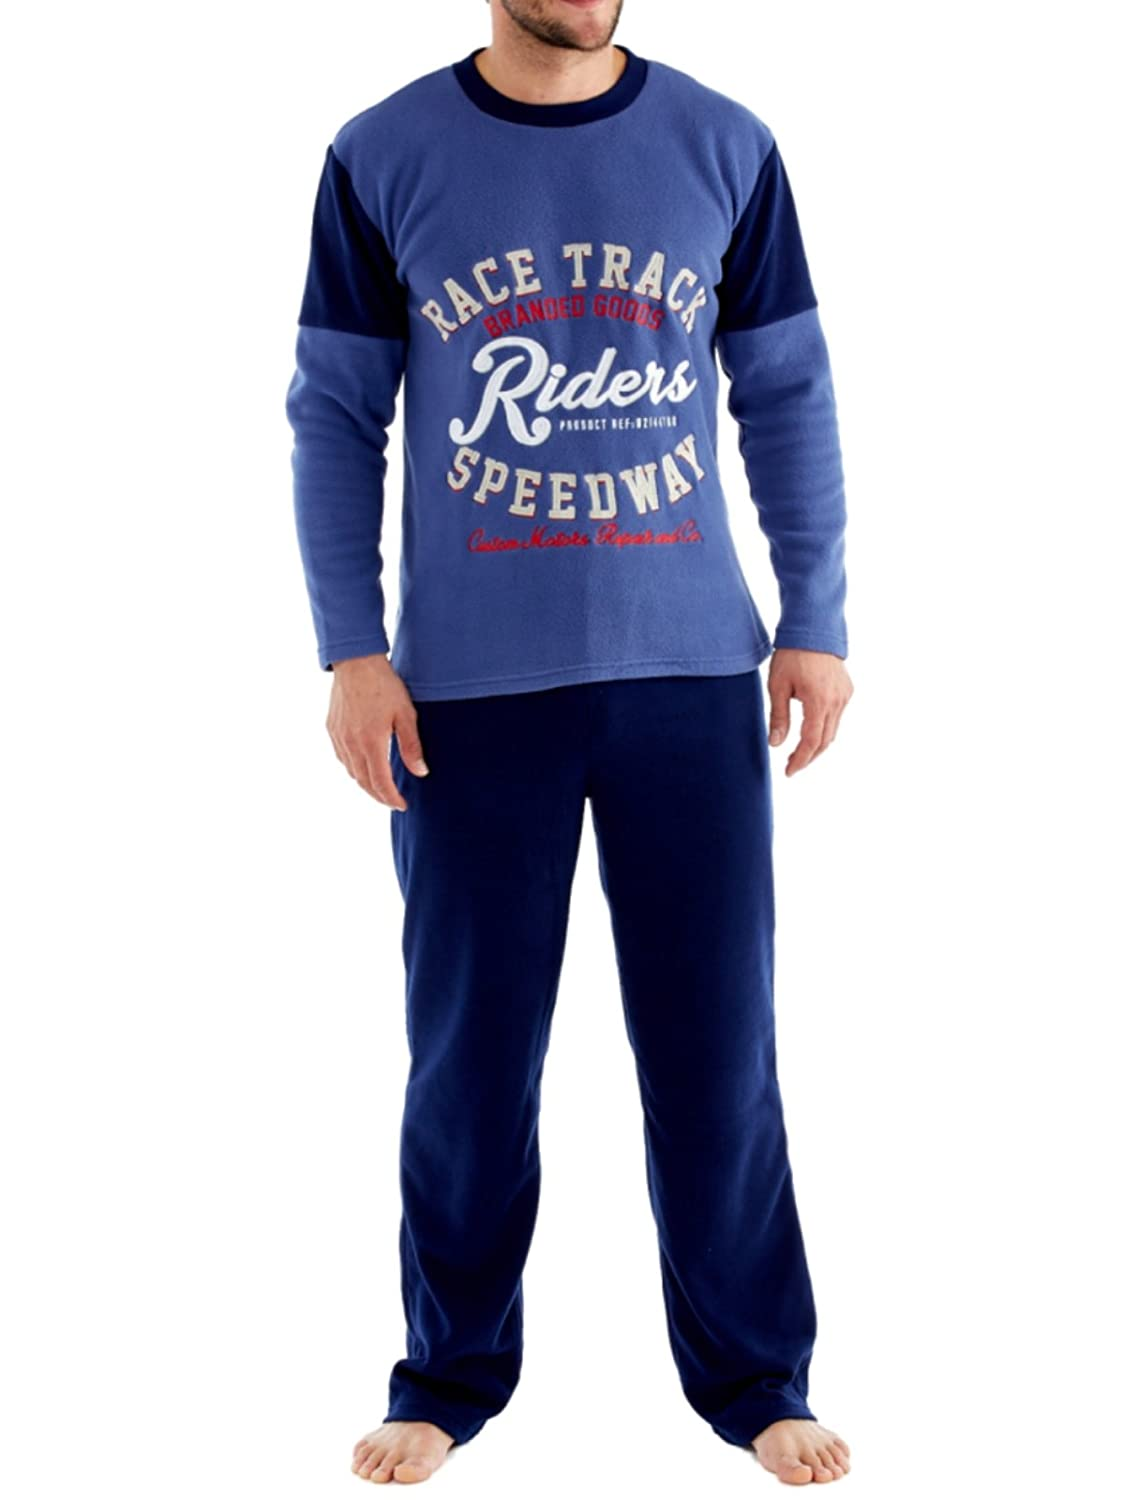 Men's Harvey James Warm Polar Fleece Pyjama Sets, Thermal Loungewear SaneShoppe